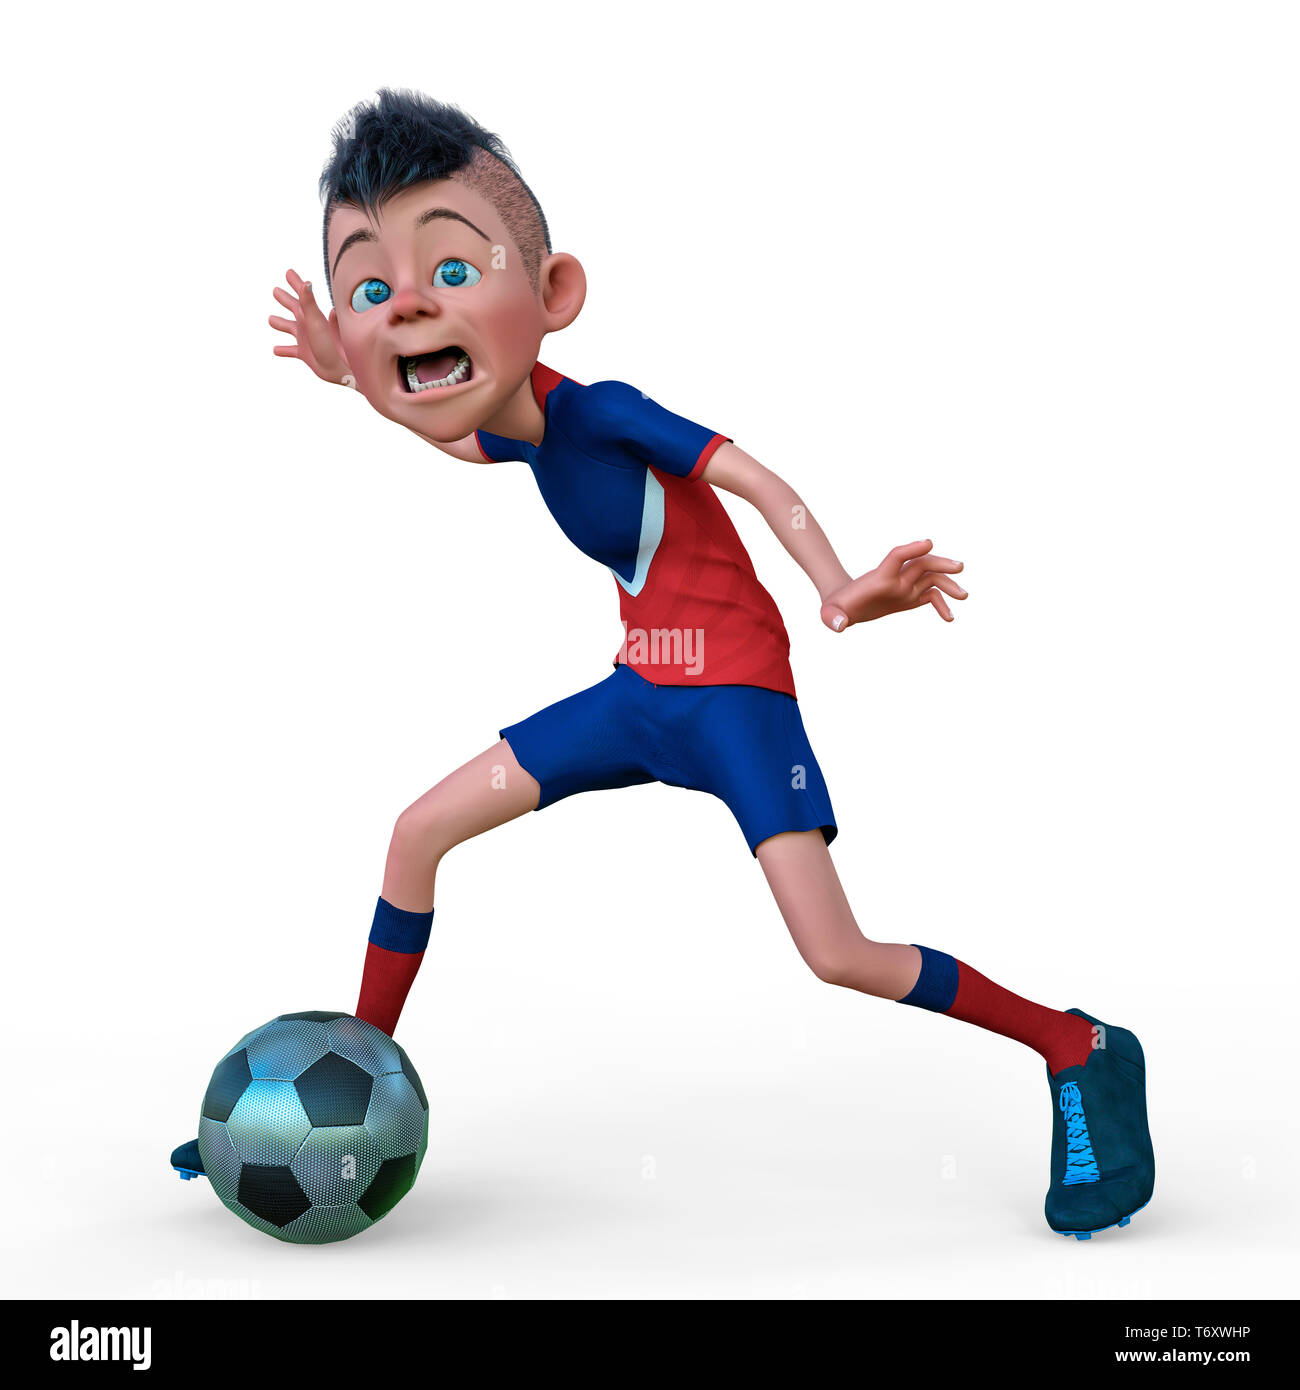 footballer cartoon in a white background to put some fun in yours creations - Stock Image